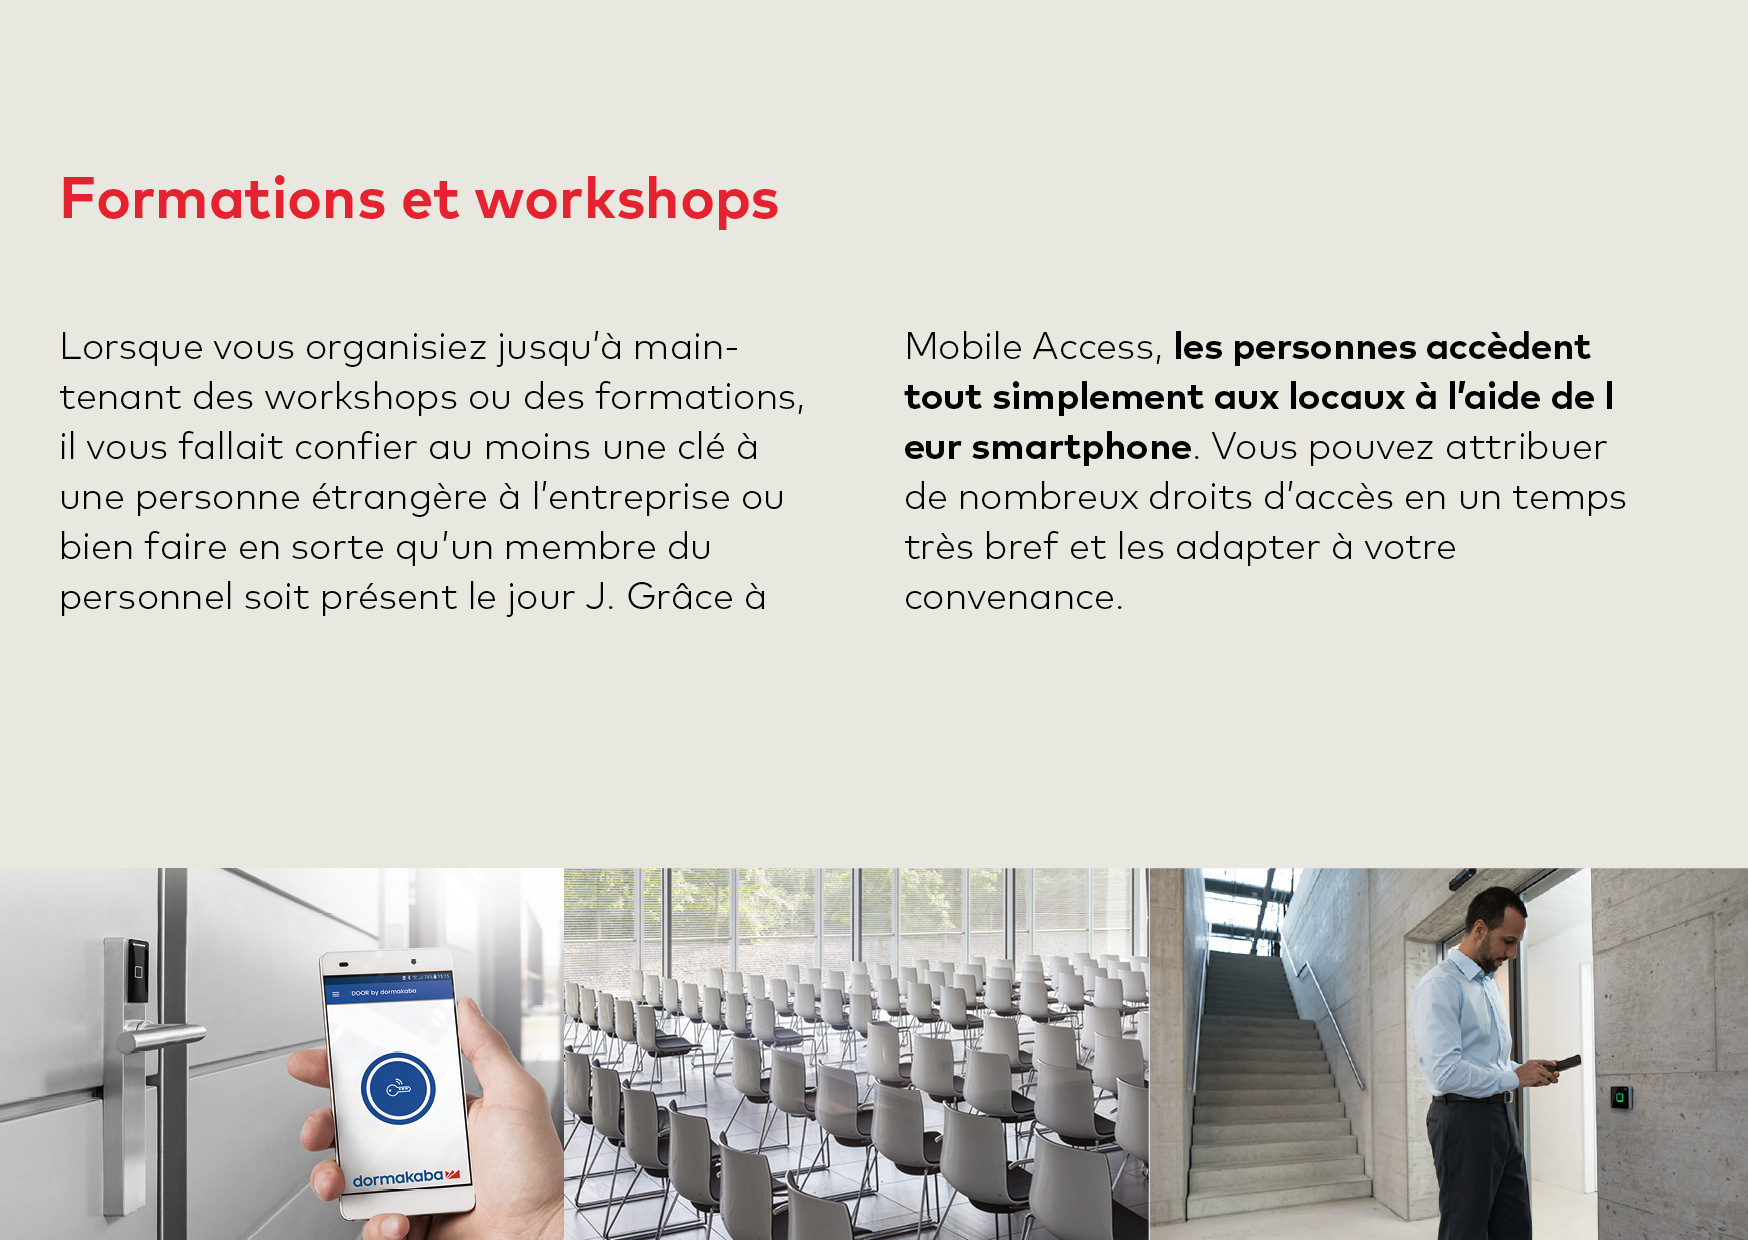 Formations_et_workshops_Mobile_Access